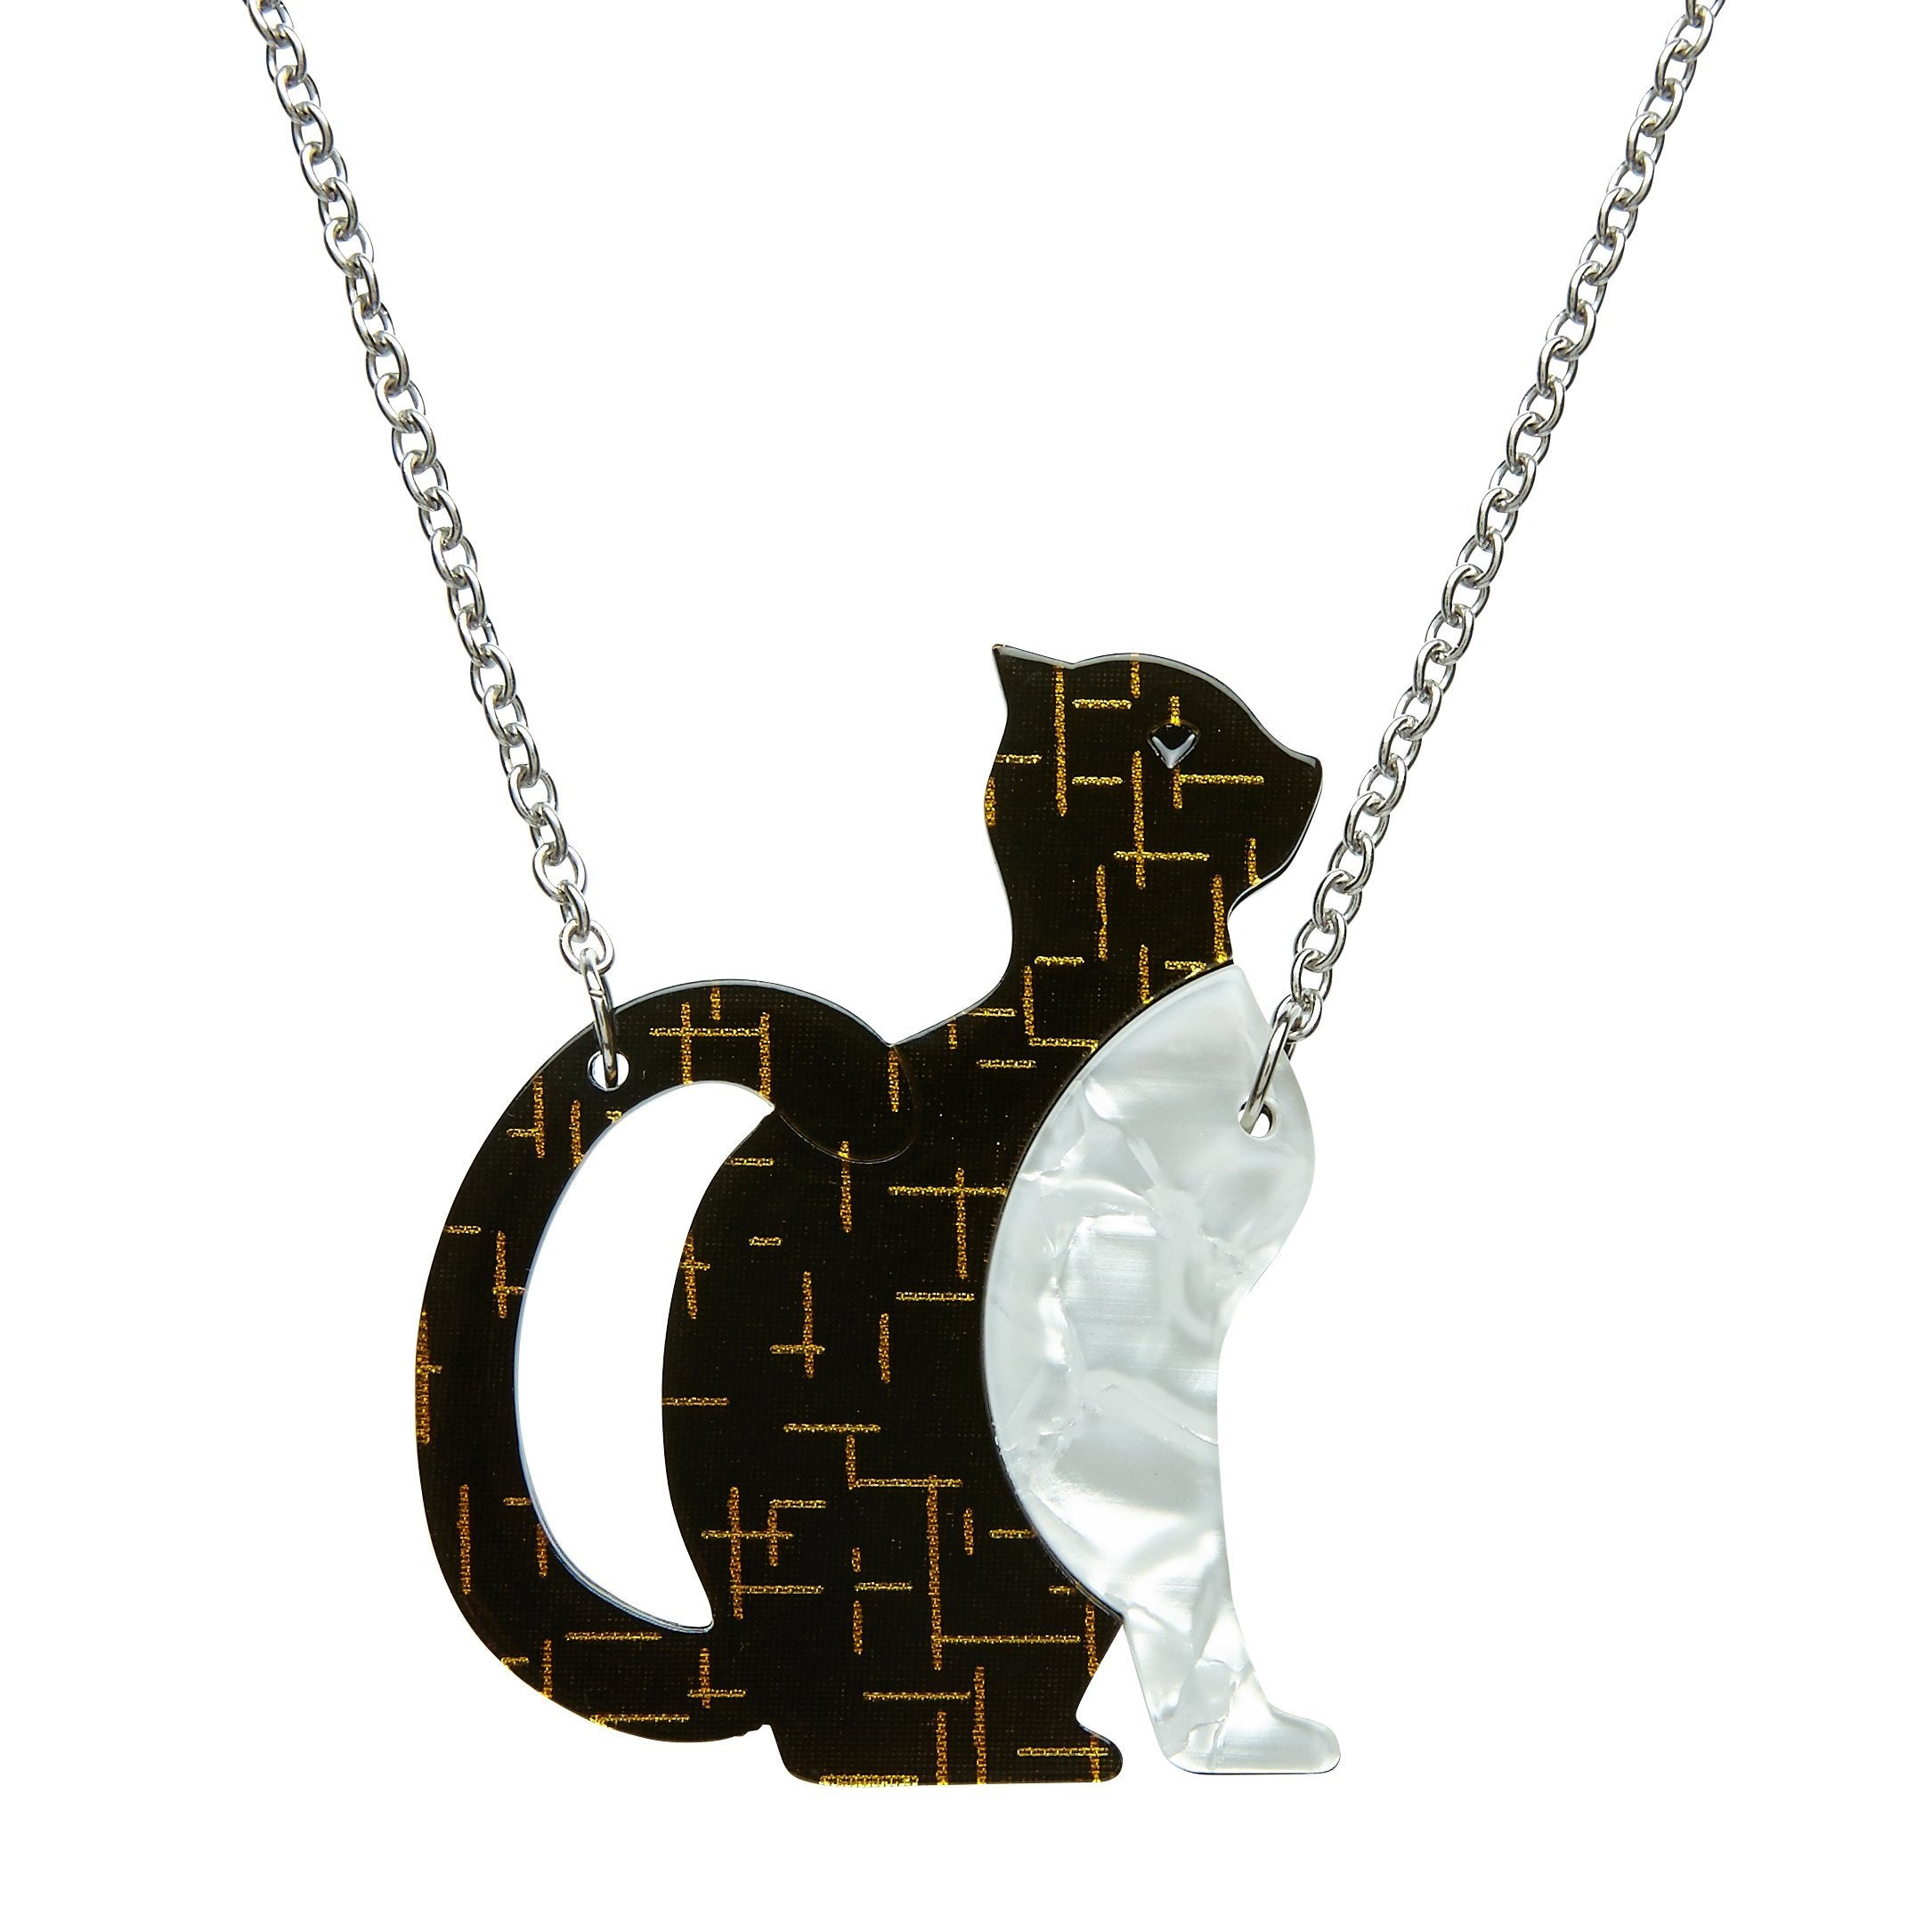 cttw cat color and i j necklace jewelry com clarity rose gold amazon pendant diamond dp